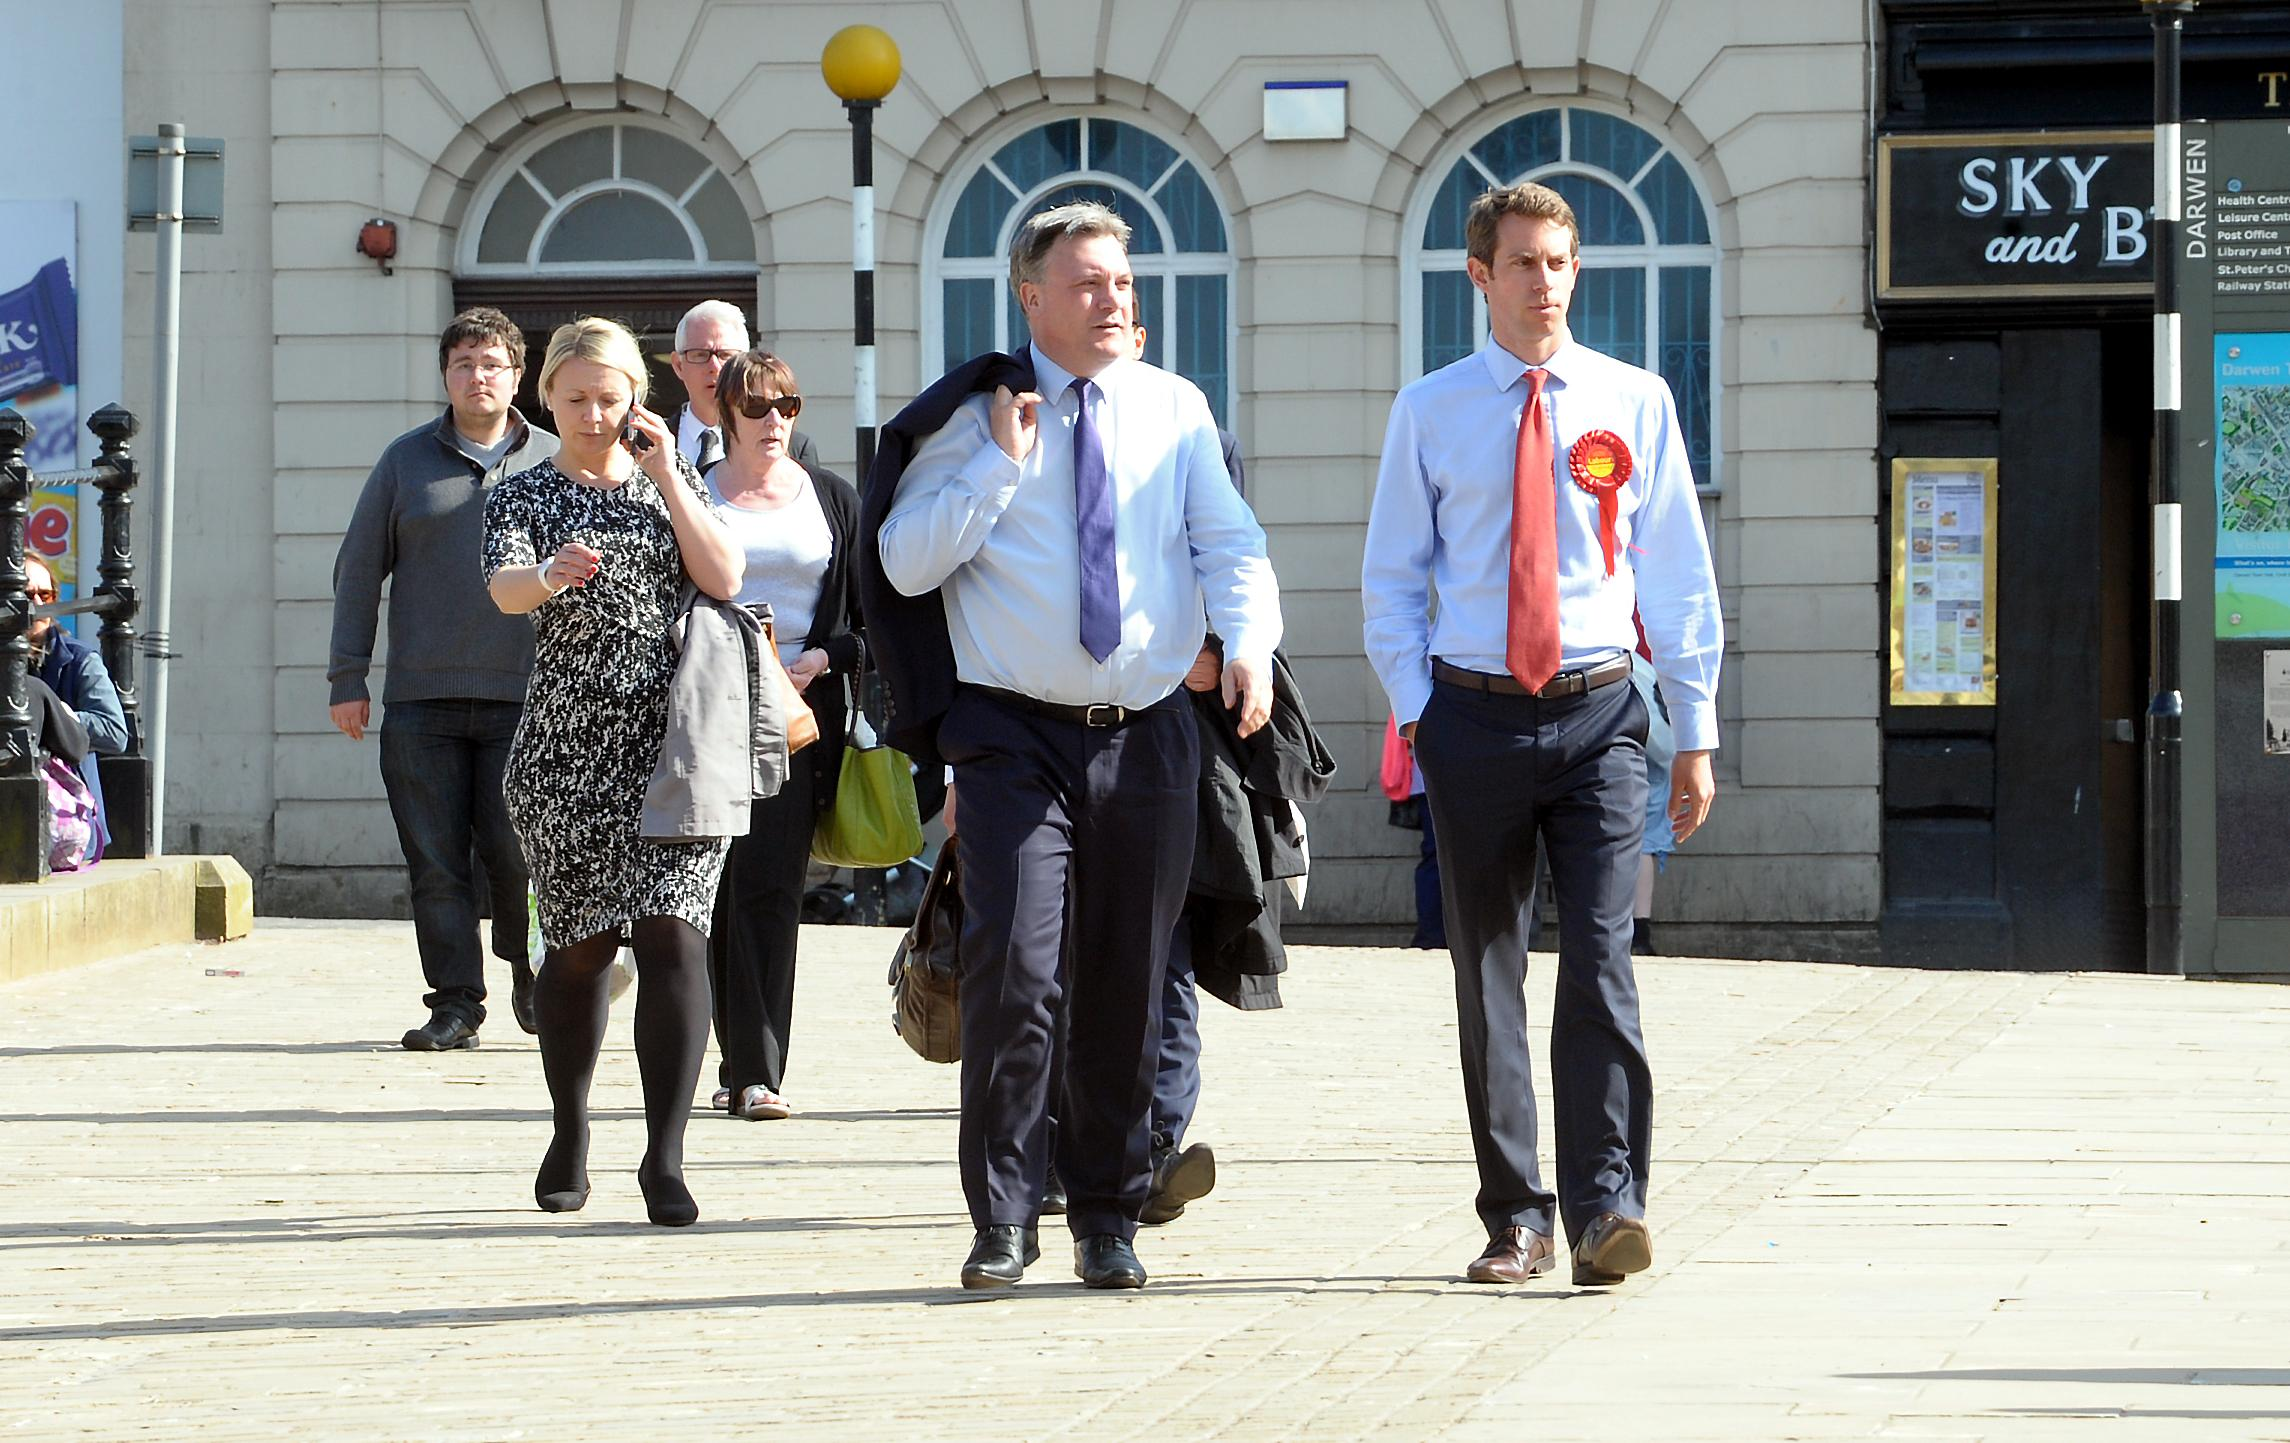 WALKABOUT: Ed Balls, Labour Shadow Chancellor, visits Darwen market with Will Straw